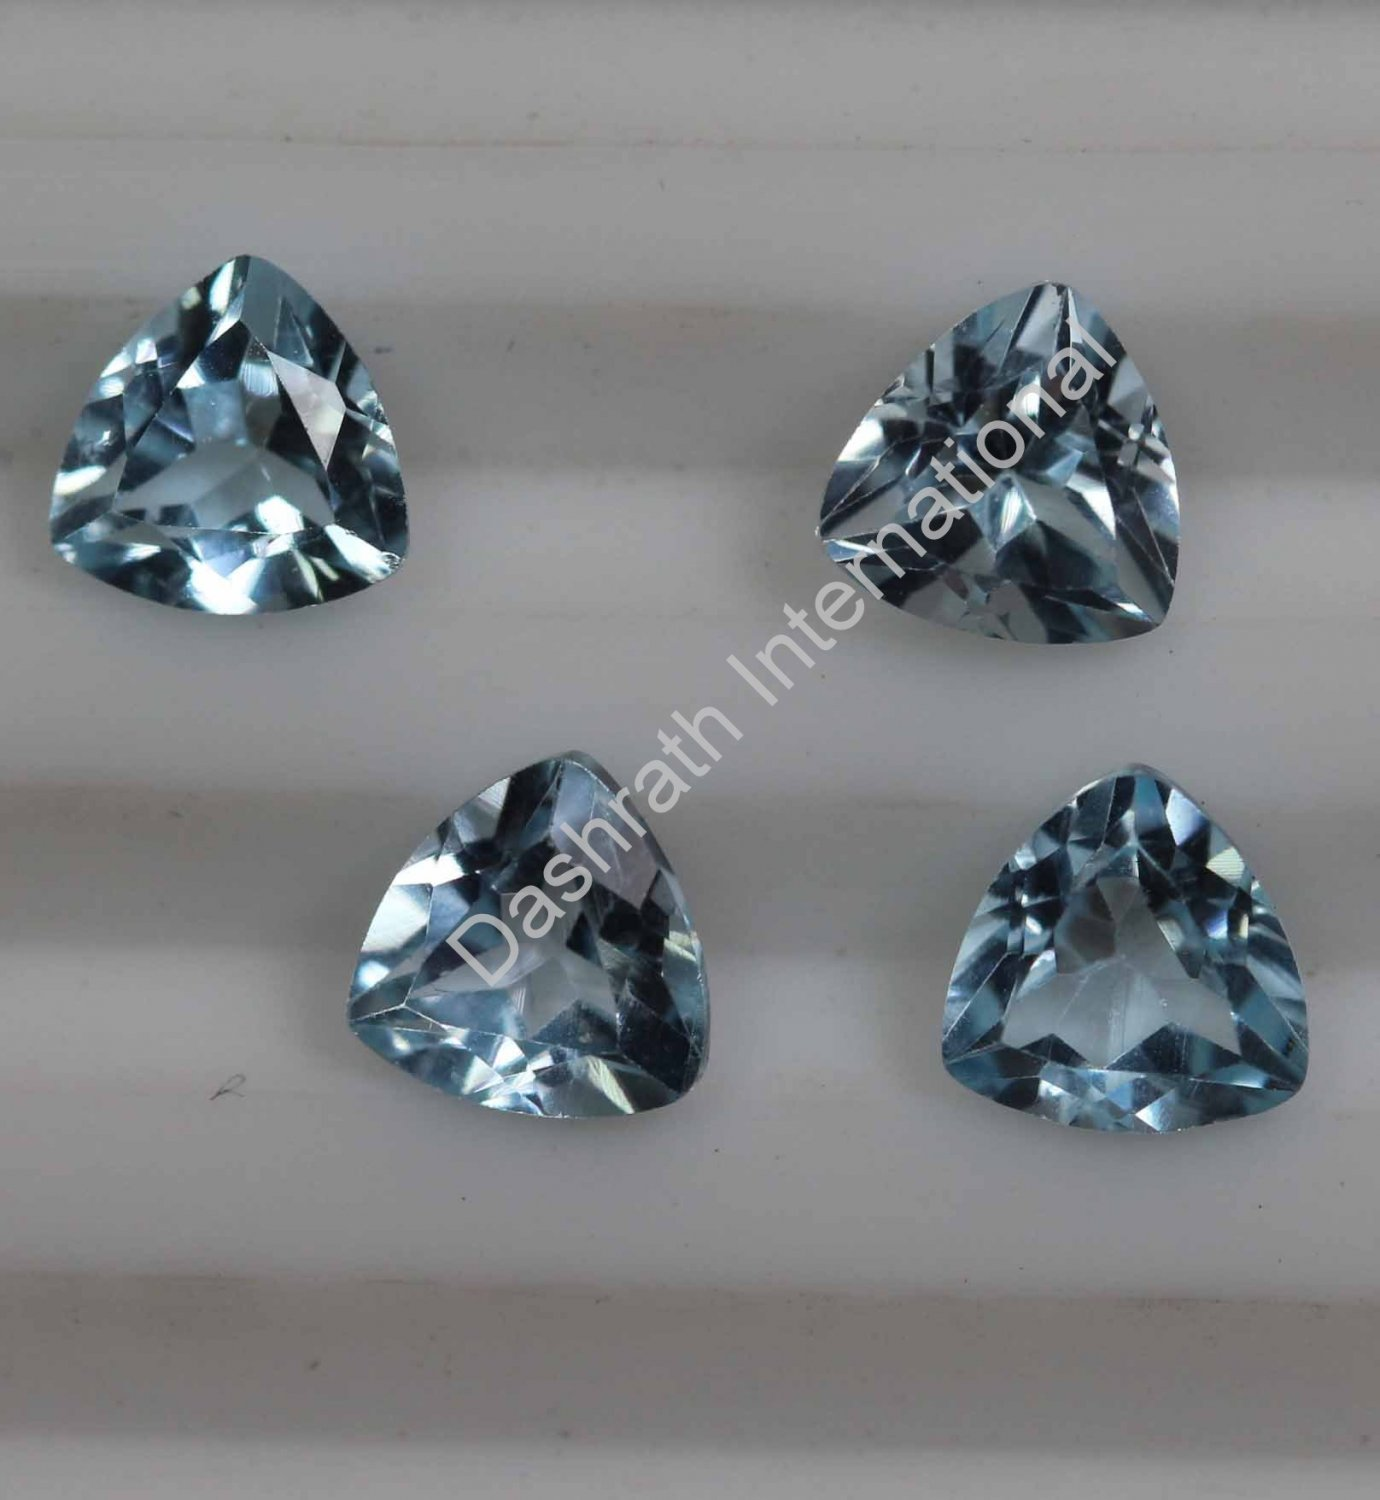 5mm Natural Sky Blue Topaz Faceted Cut Trillion 50 Pieces Lot Top Quality Loose Gemstone